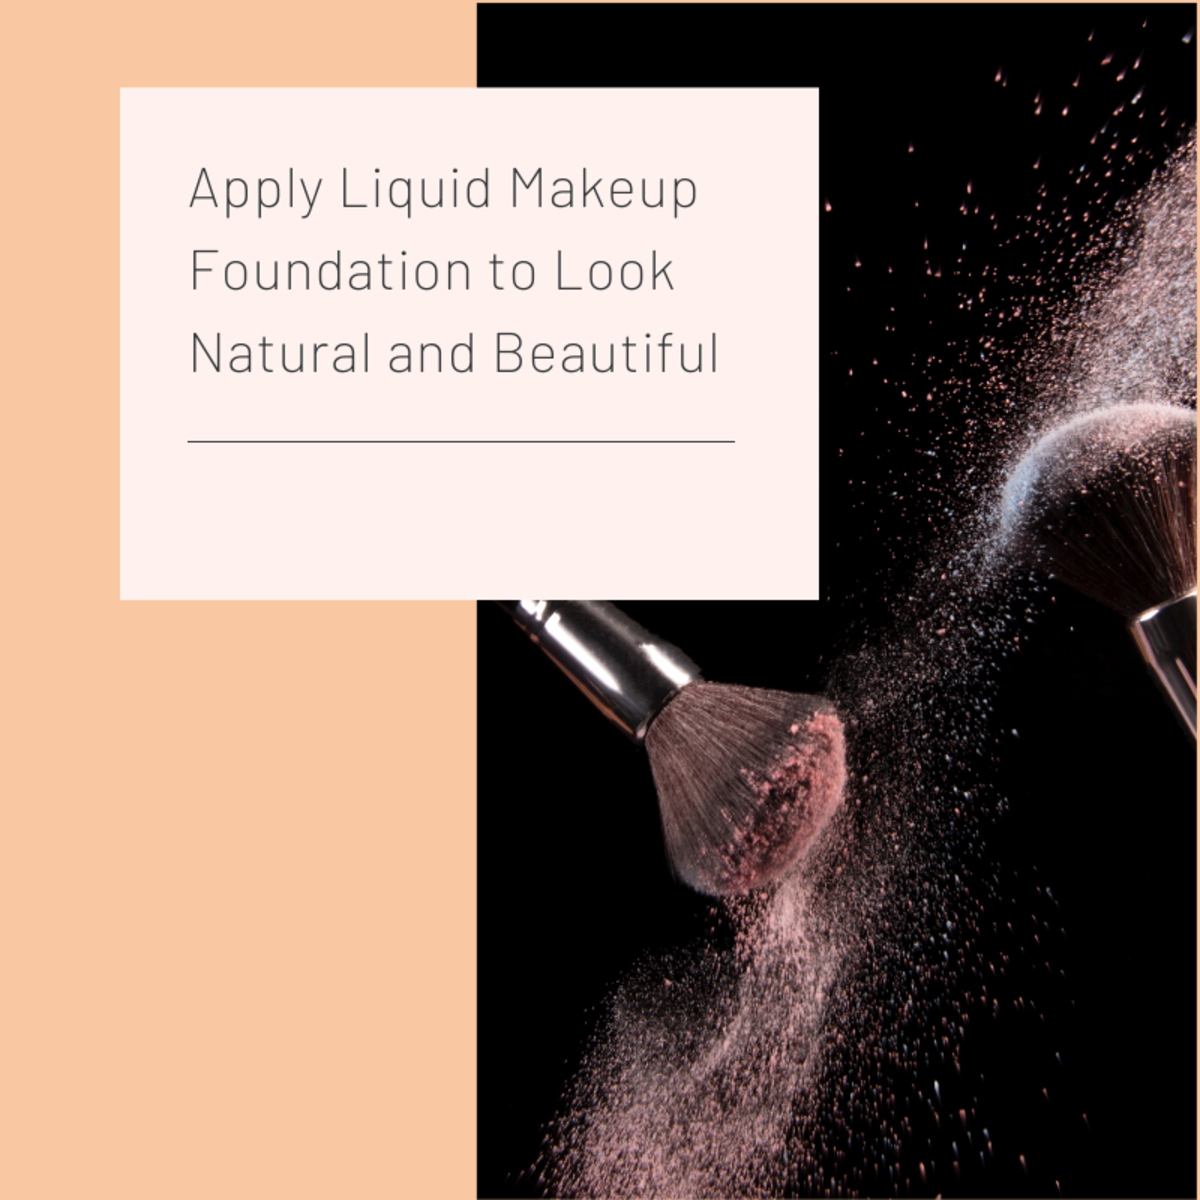 How to Apply Liquid Makeup Foundation to Look Natural